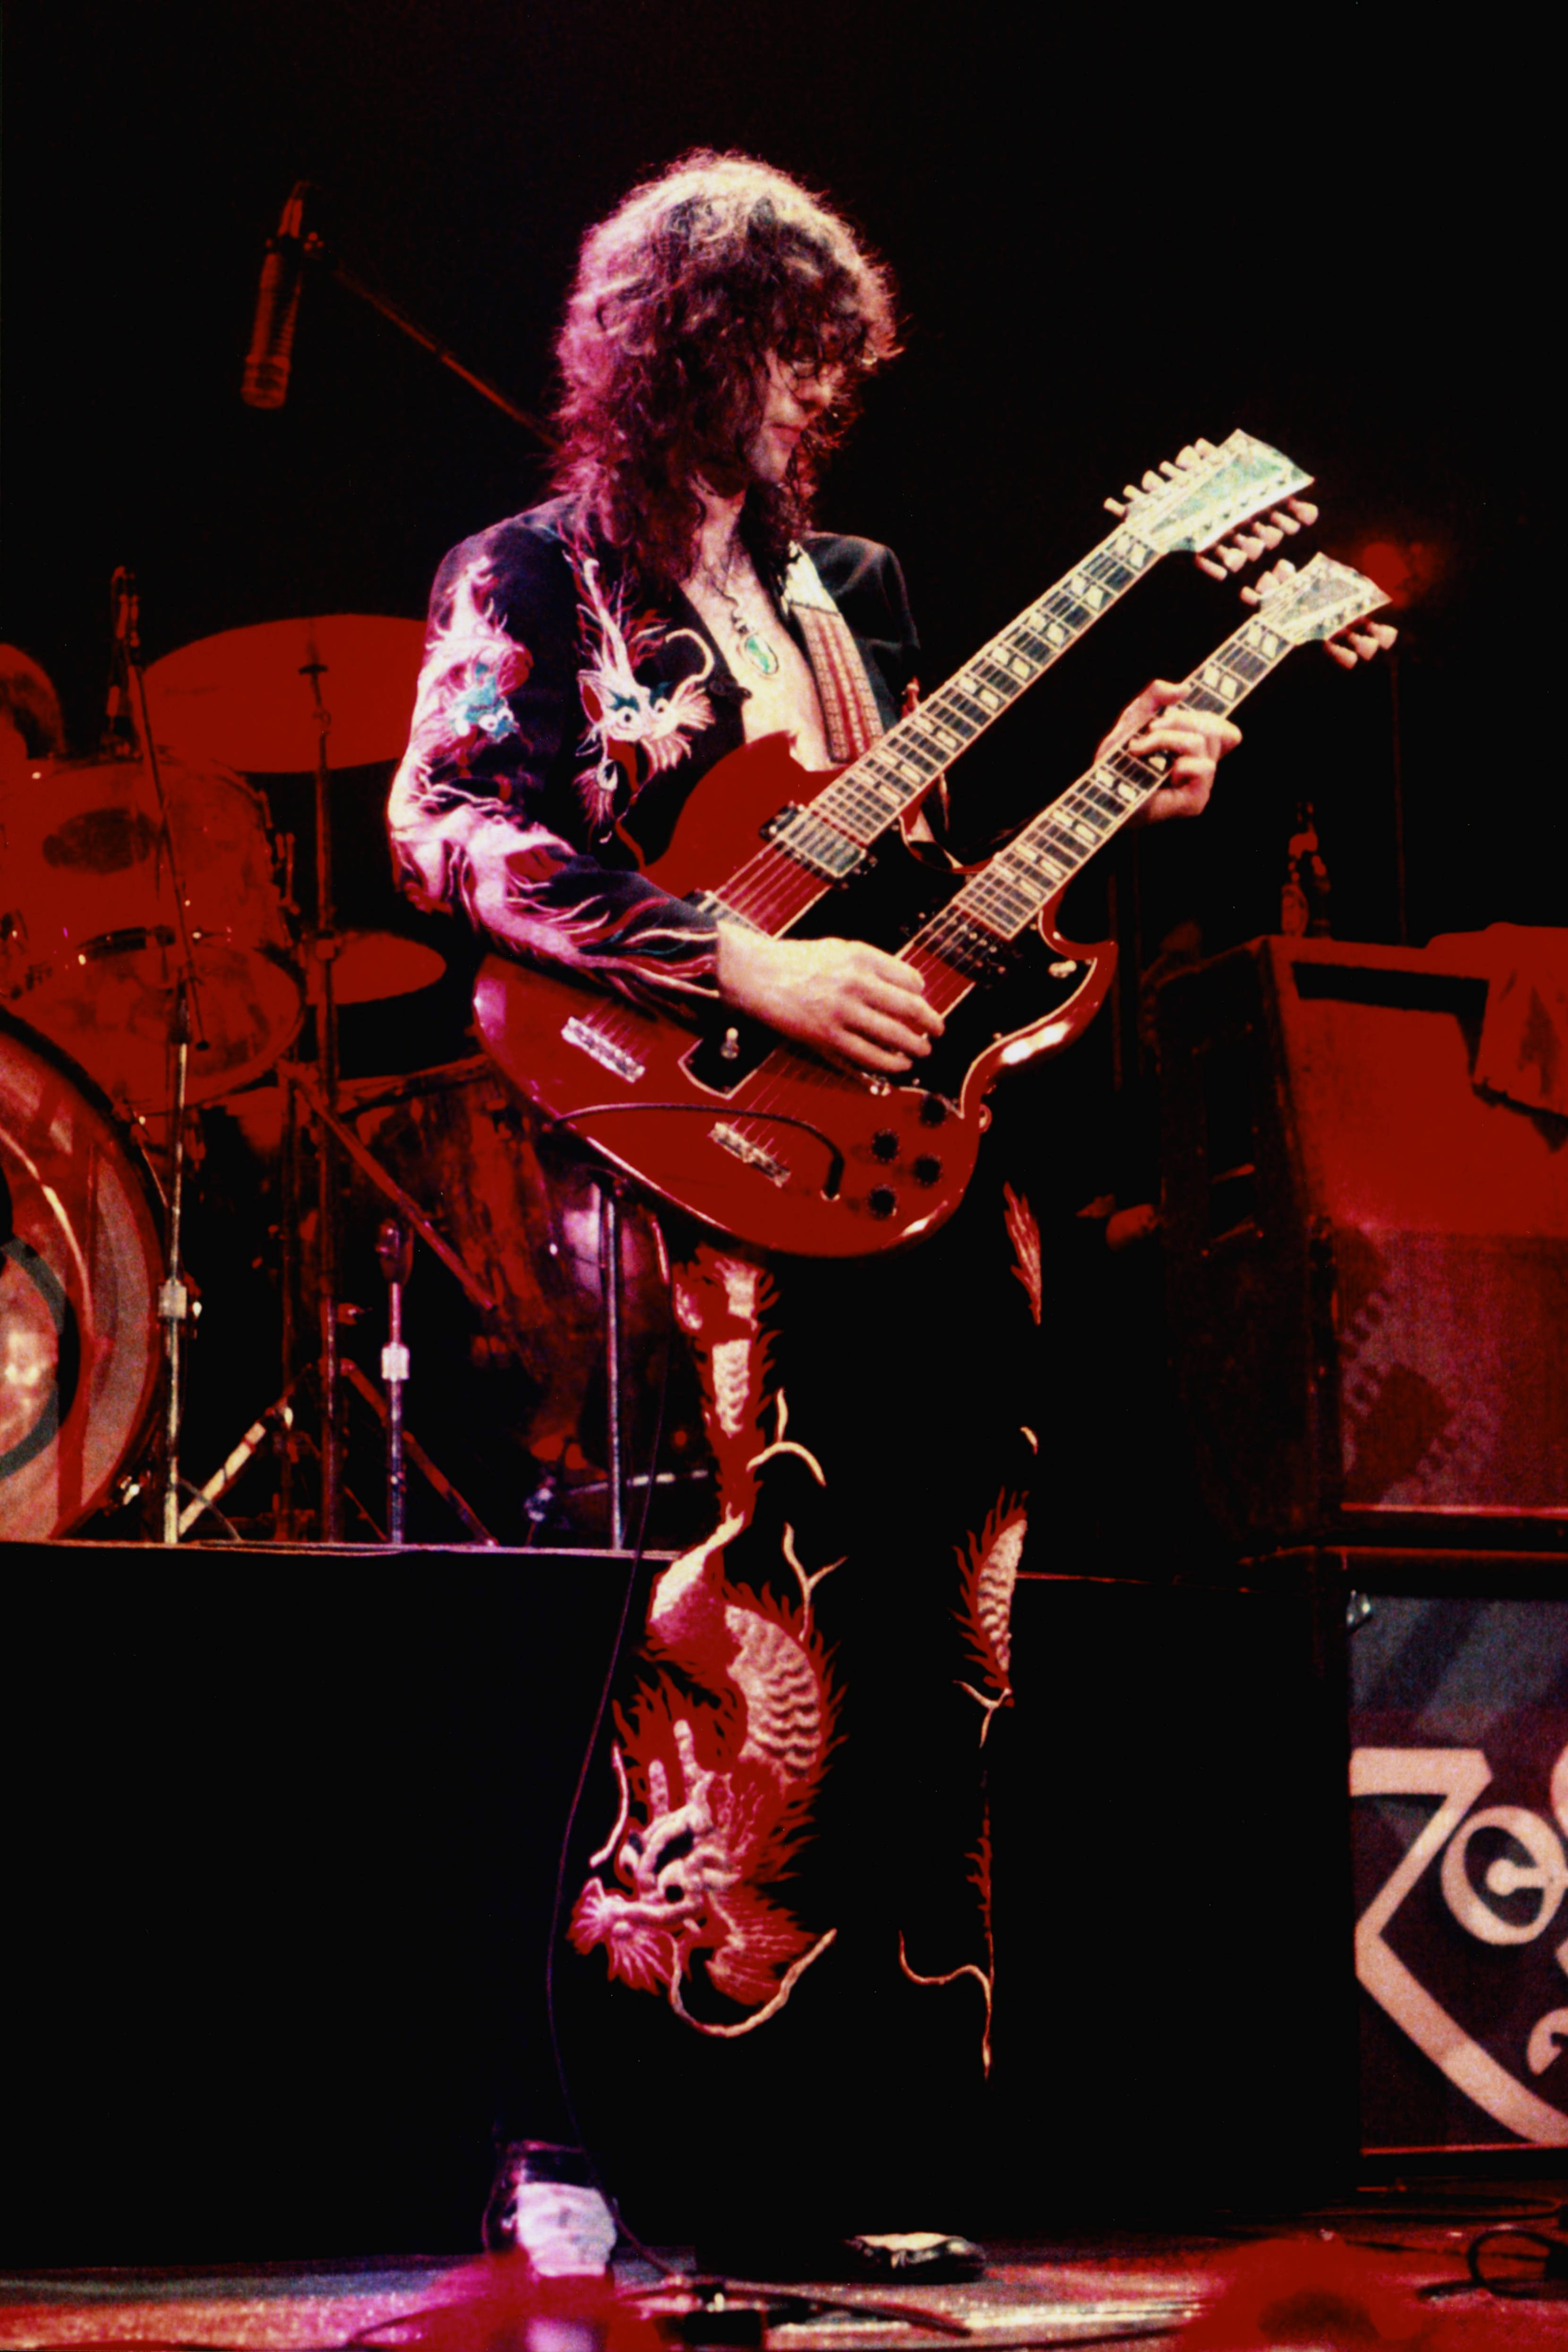 Jimmy Page on the 'Swagger' of Led Zeppelin's 'Physical Graffiti'